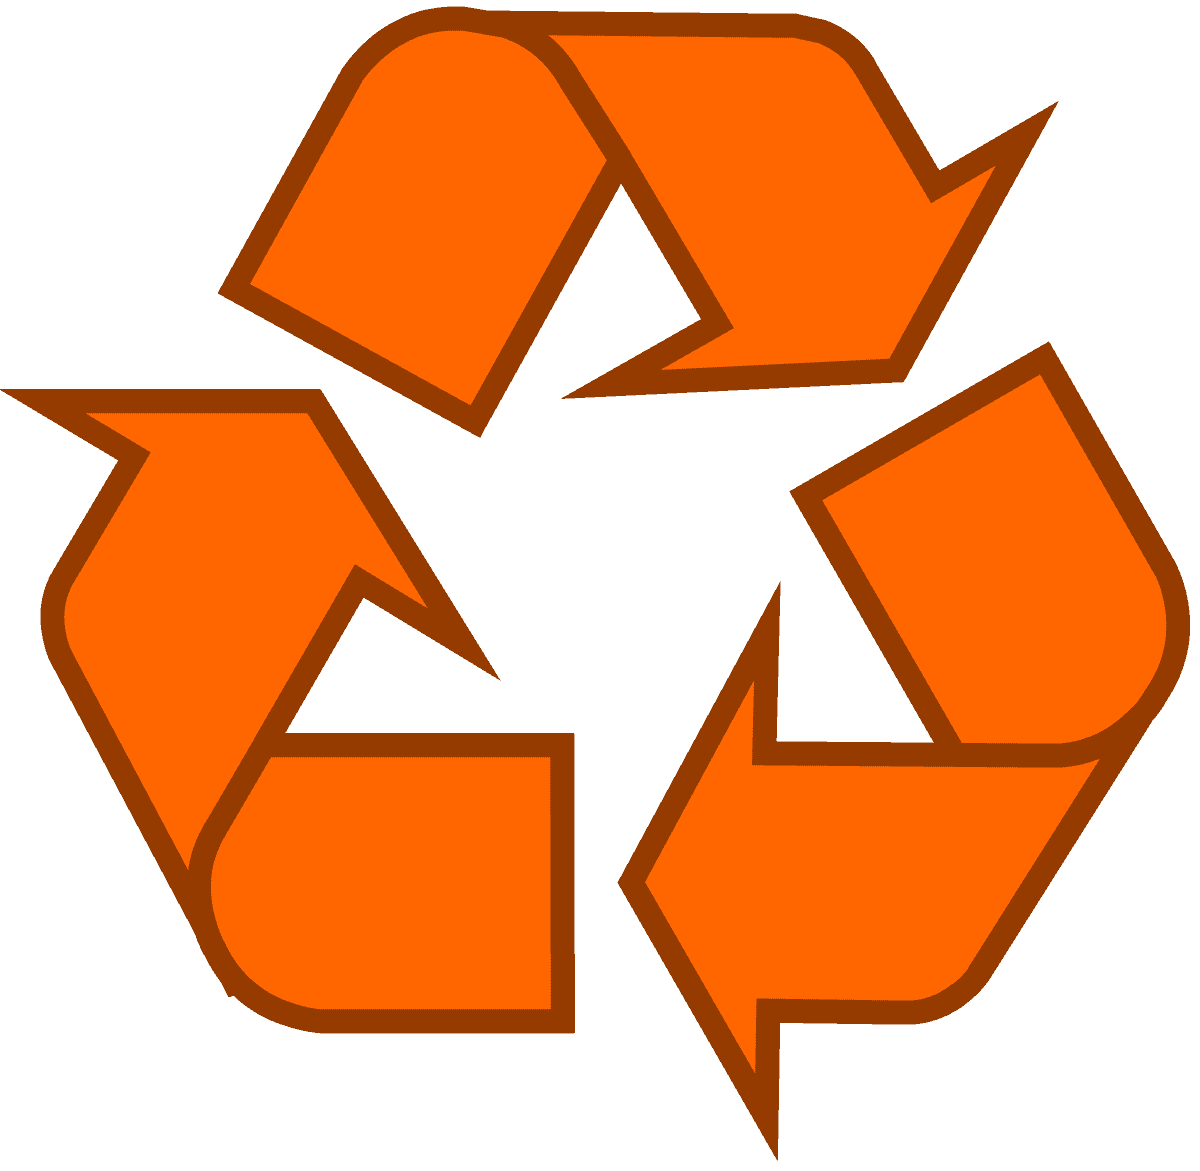 recycling-symbol-icon-outline-solid-orange